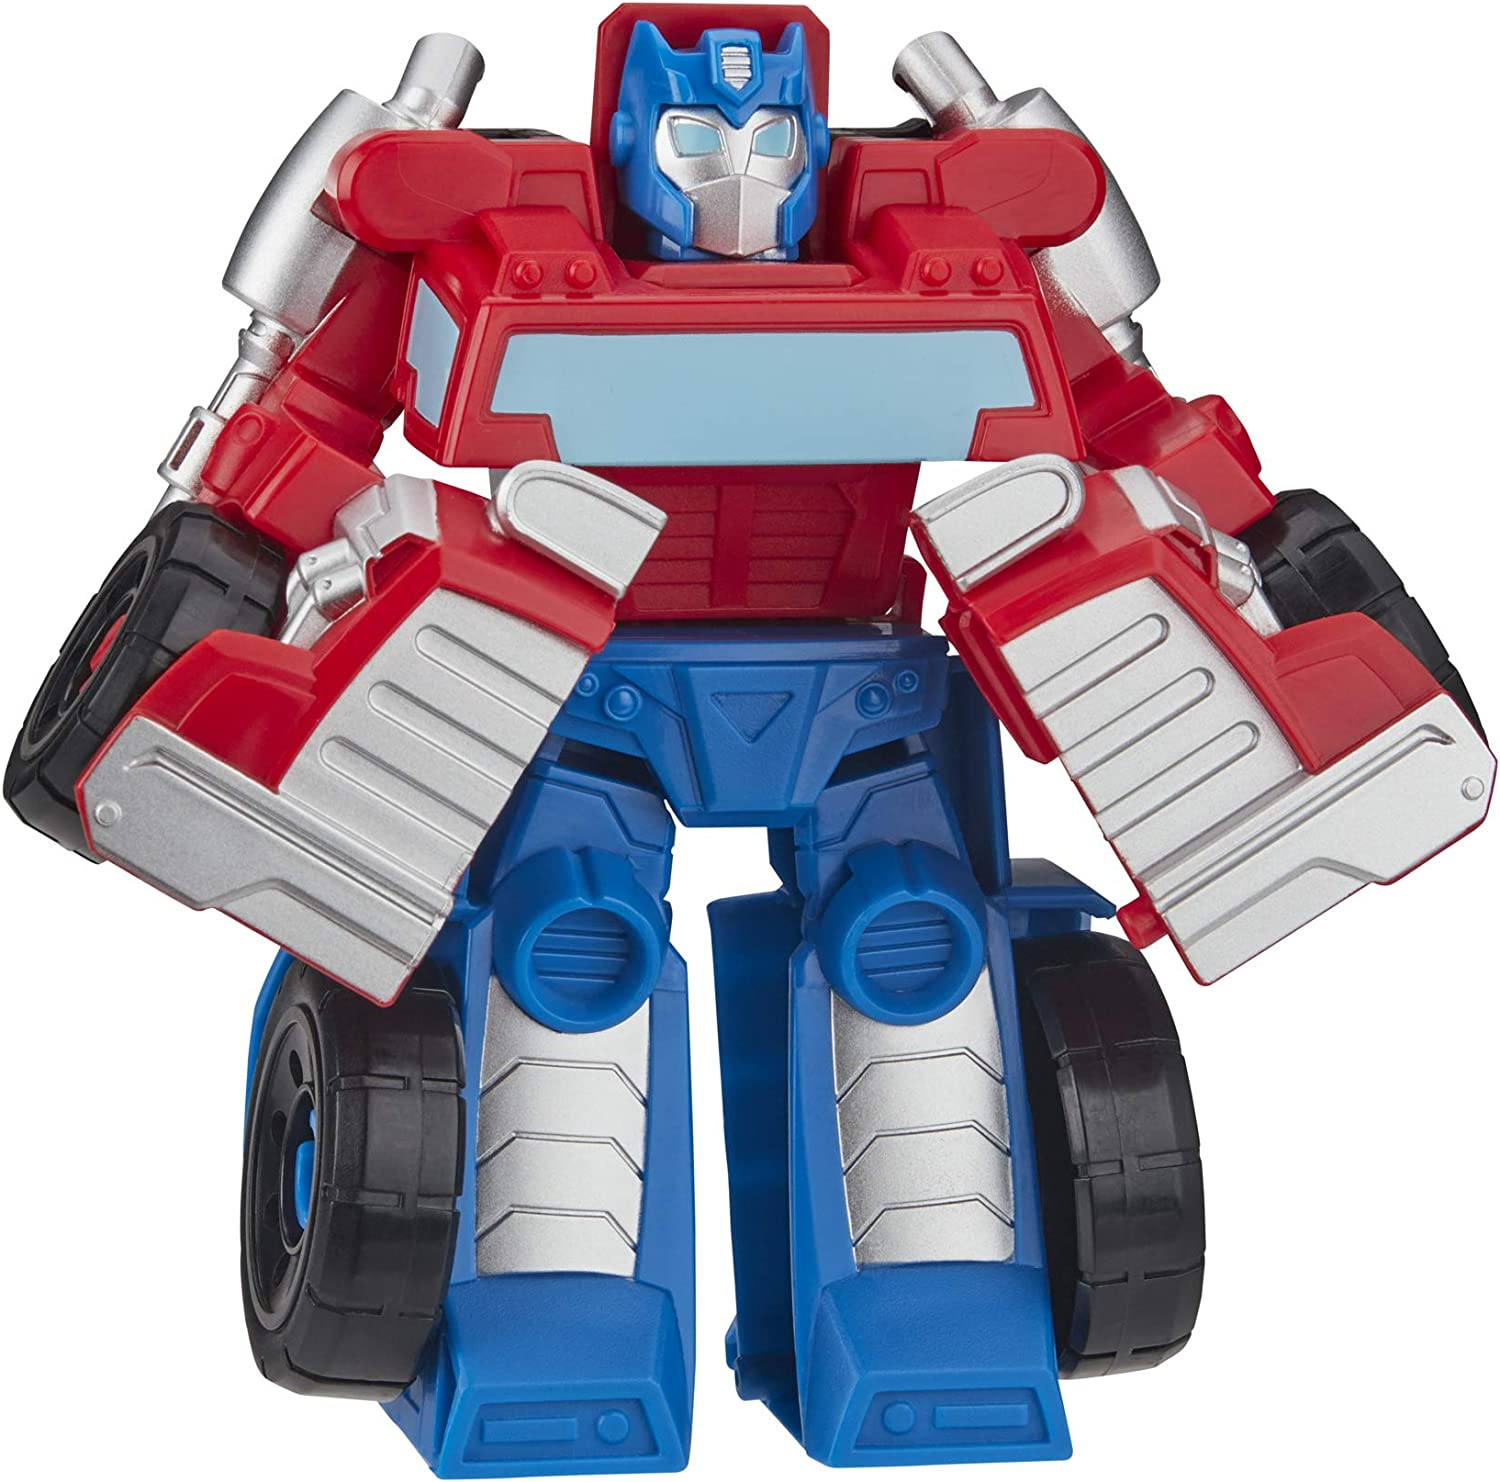 Transformers Playskool Heroes Rescue Bots Academy Optimus Prime Converting Toy, 4.5-Inch Action Figure, Toys for Kids Ages 3 and Up